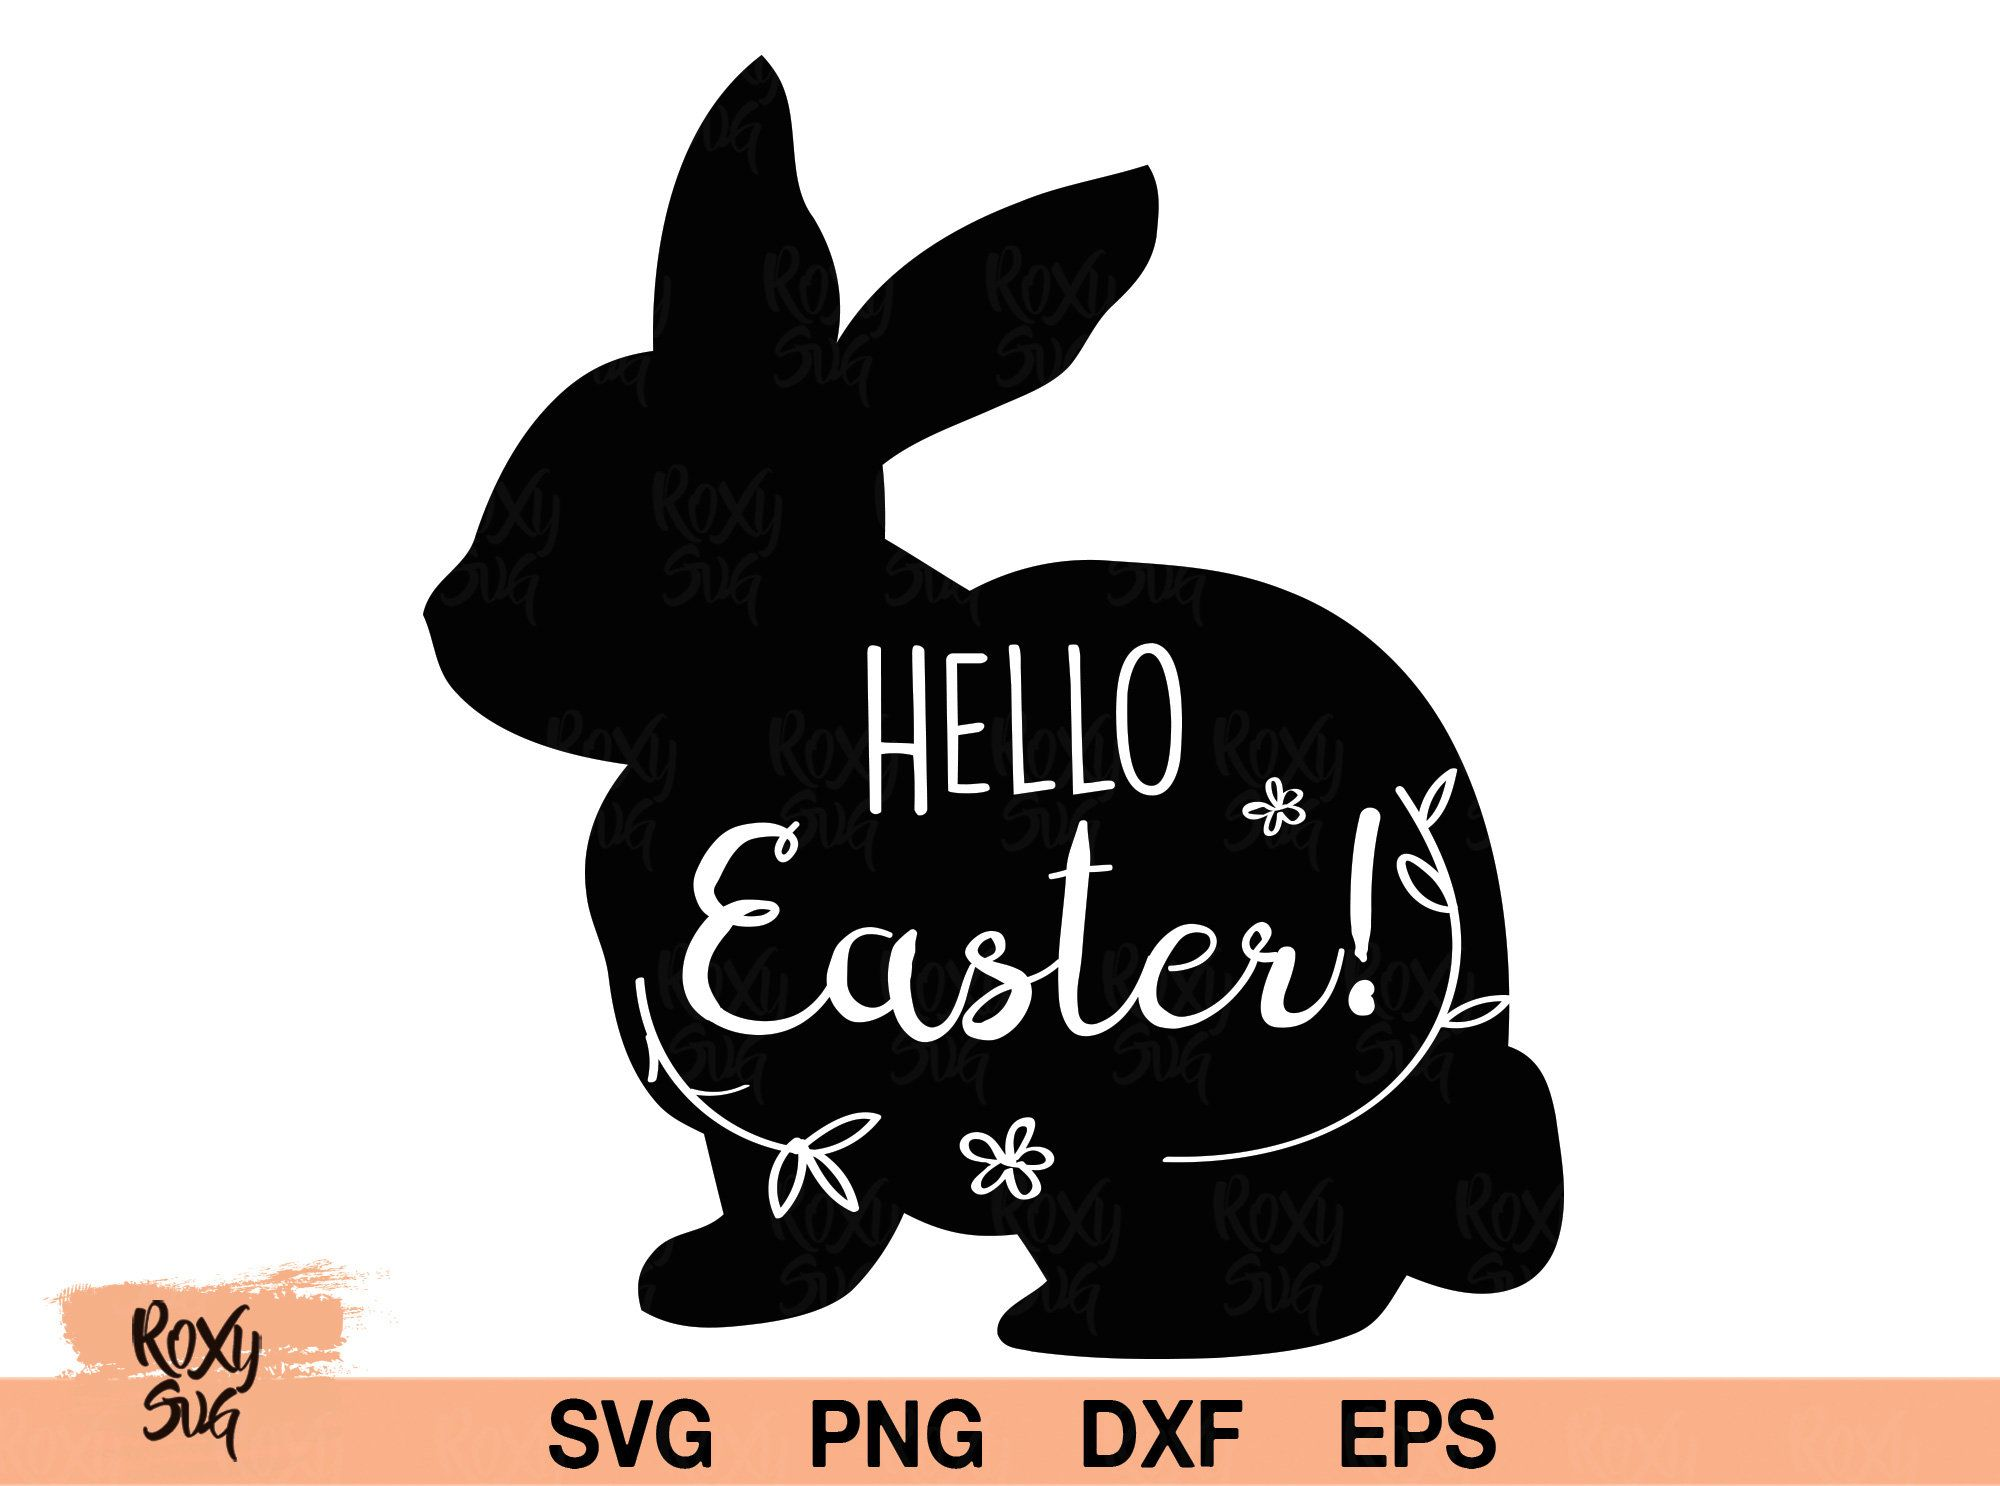 Easter Bunny Silhouette Svg Free Svg Cut Files Create Your Diy Projects Using Your Cricut Explore Silhouette And More The Free Cut Files Include Svg Dxf Eps And Png Files